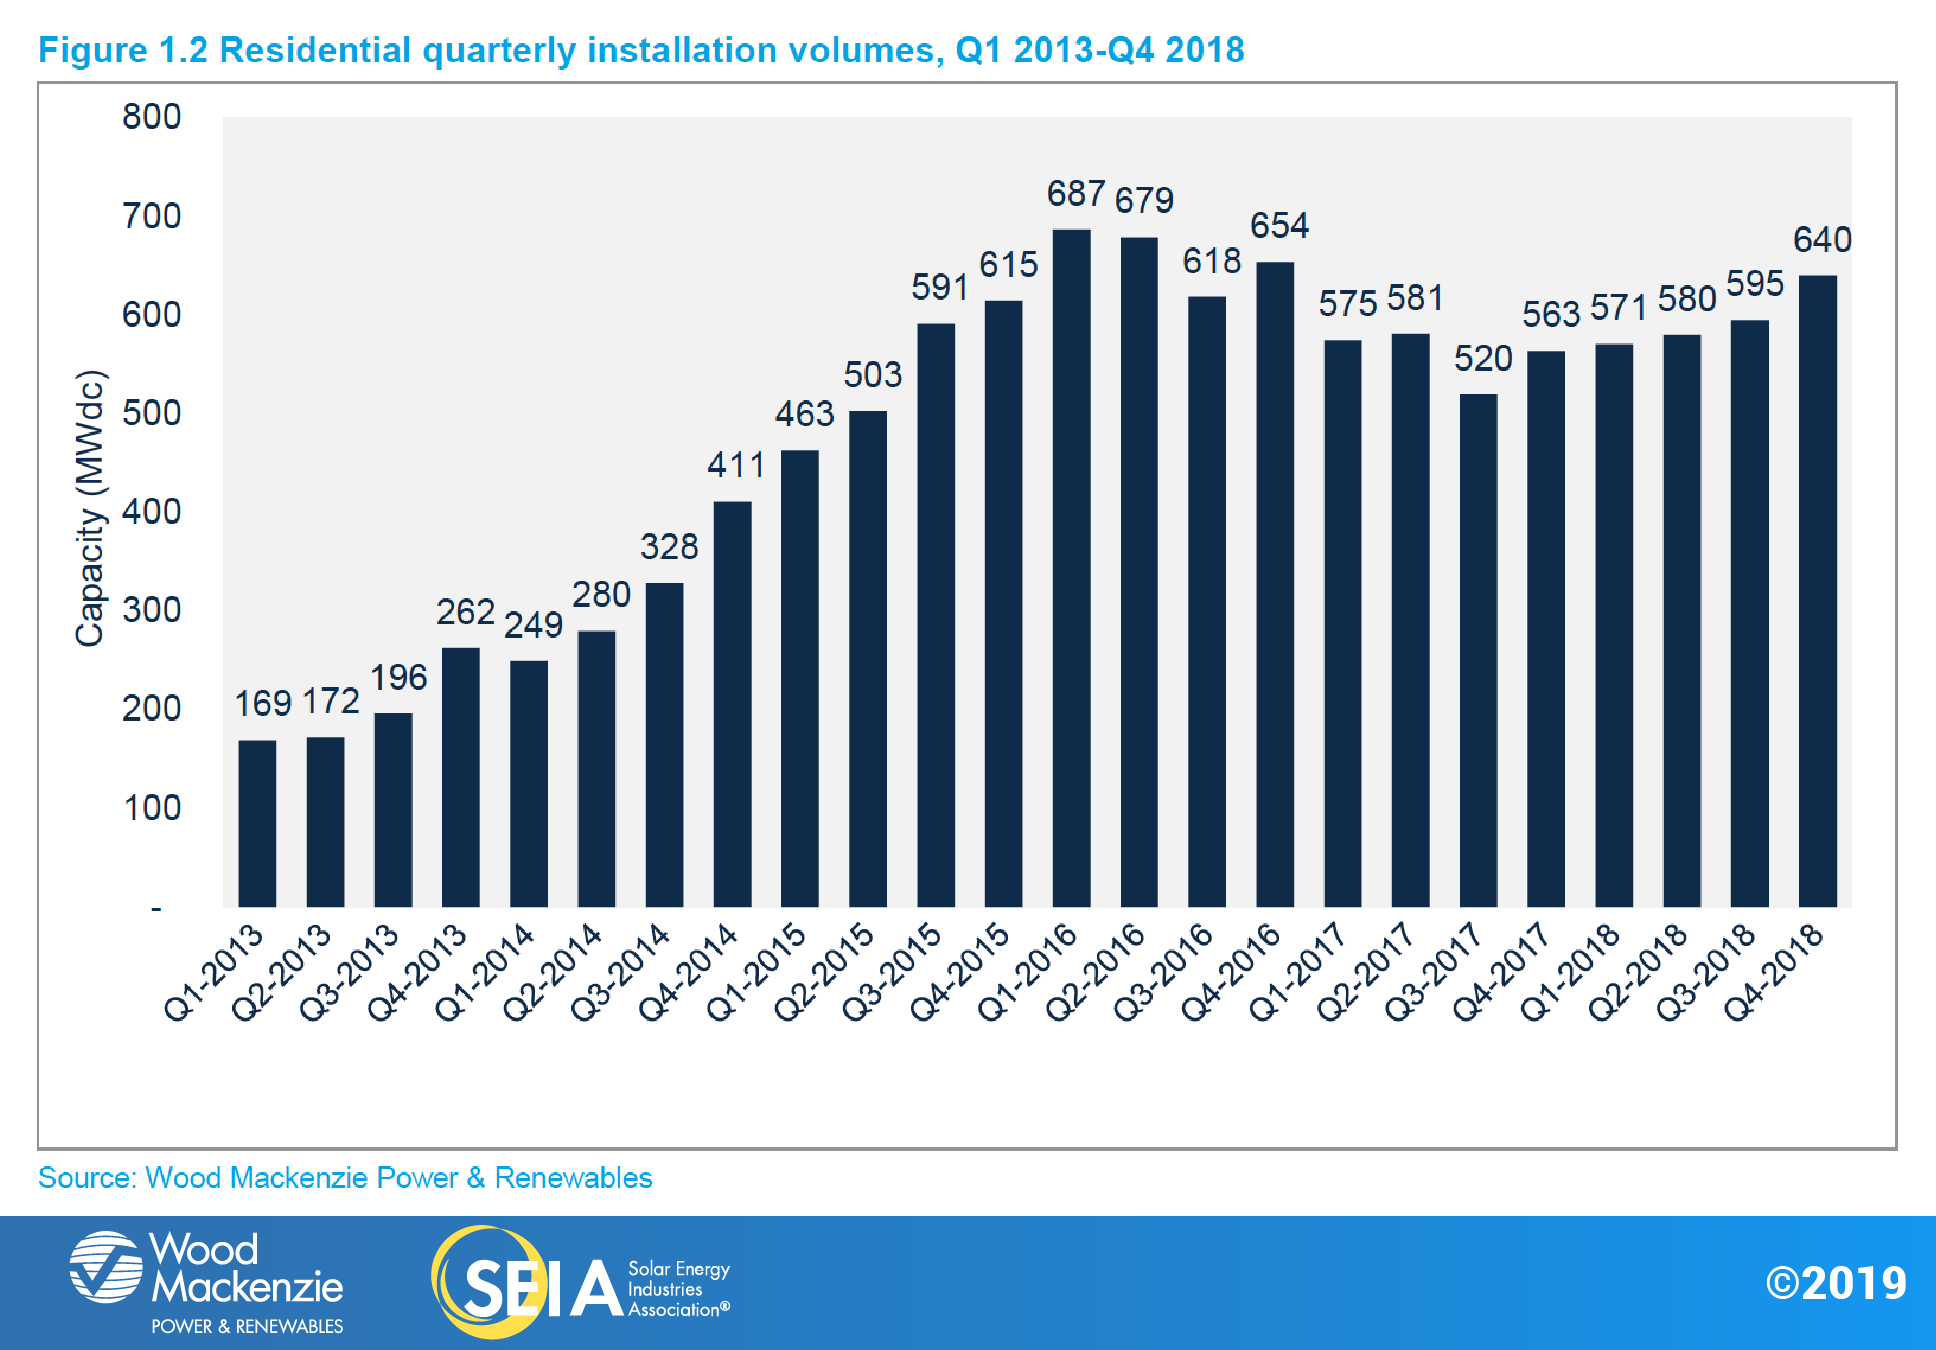 Steady growth of residential PV installations shows the market nears maturity, the analysis said (Credit: SEIA / Wood Mackenzie)